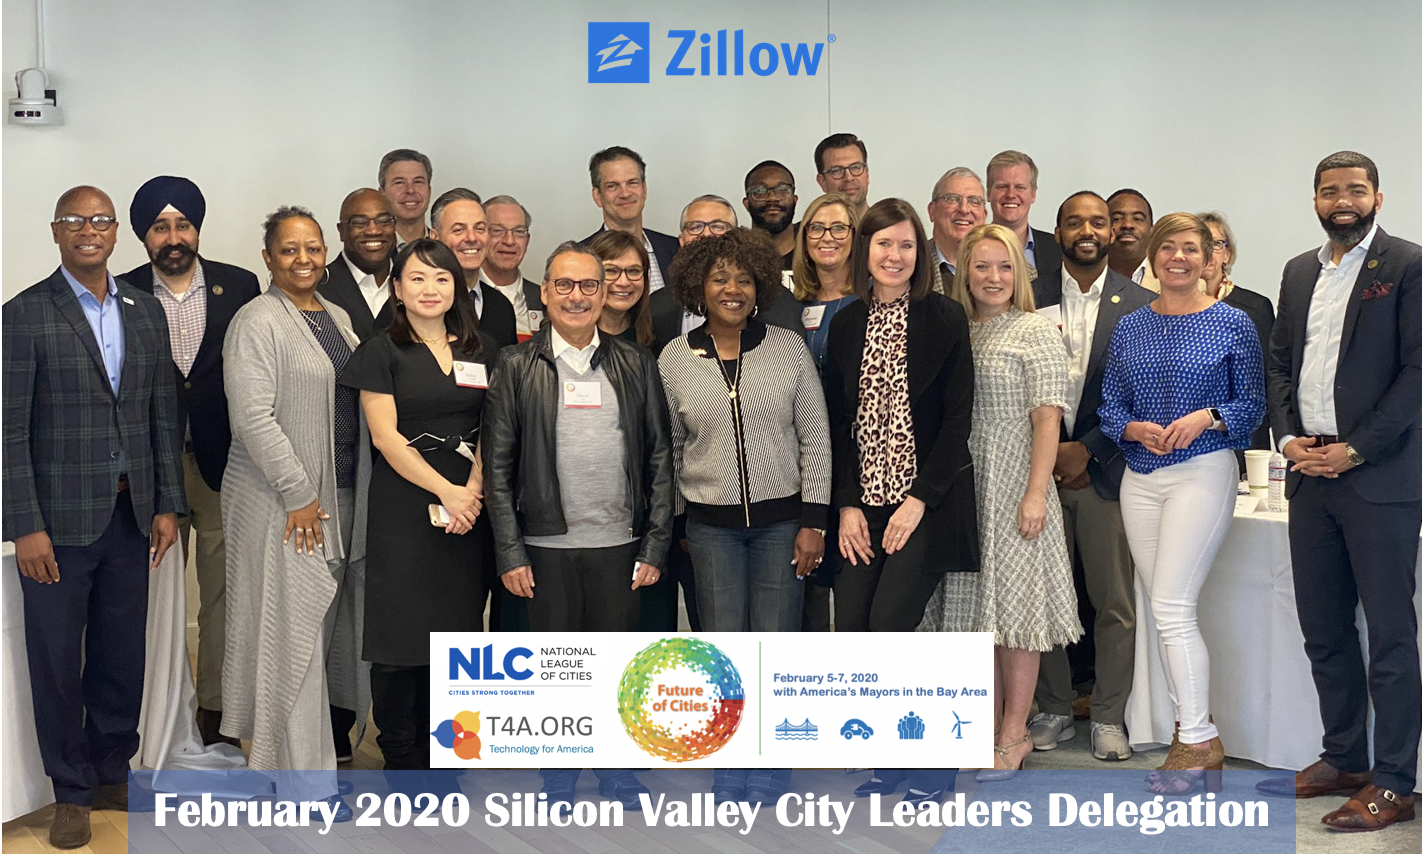 NLC T4A City Delegation at Zillow (2020 February)